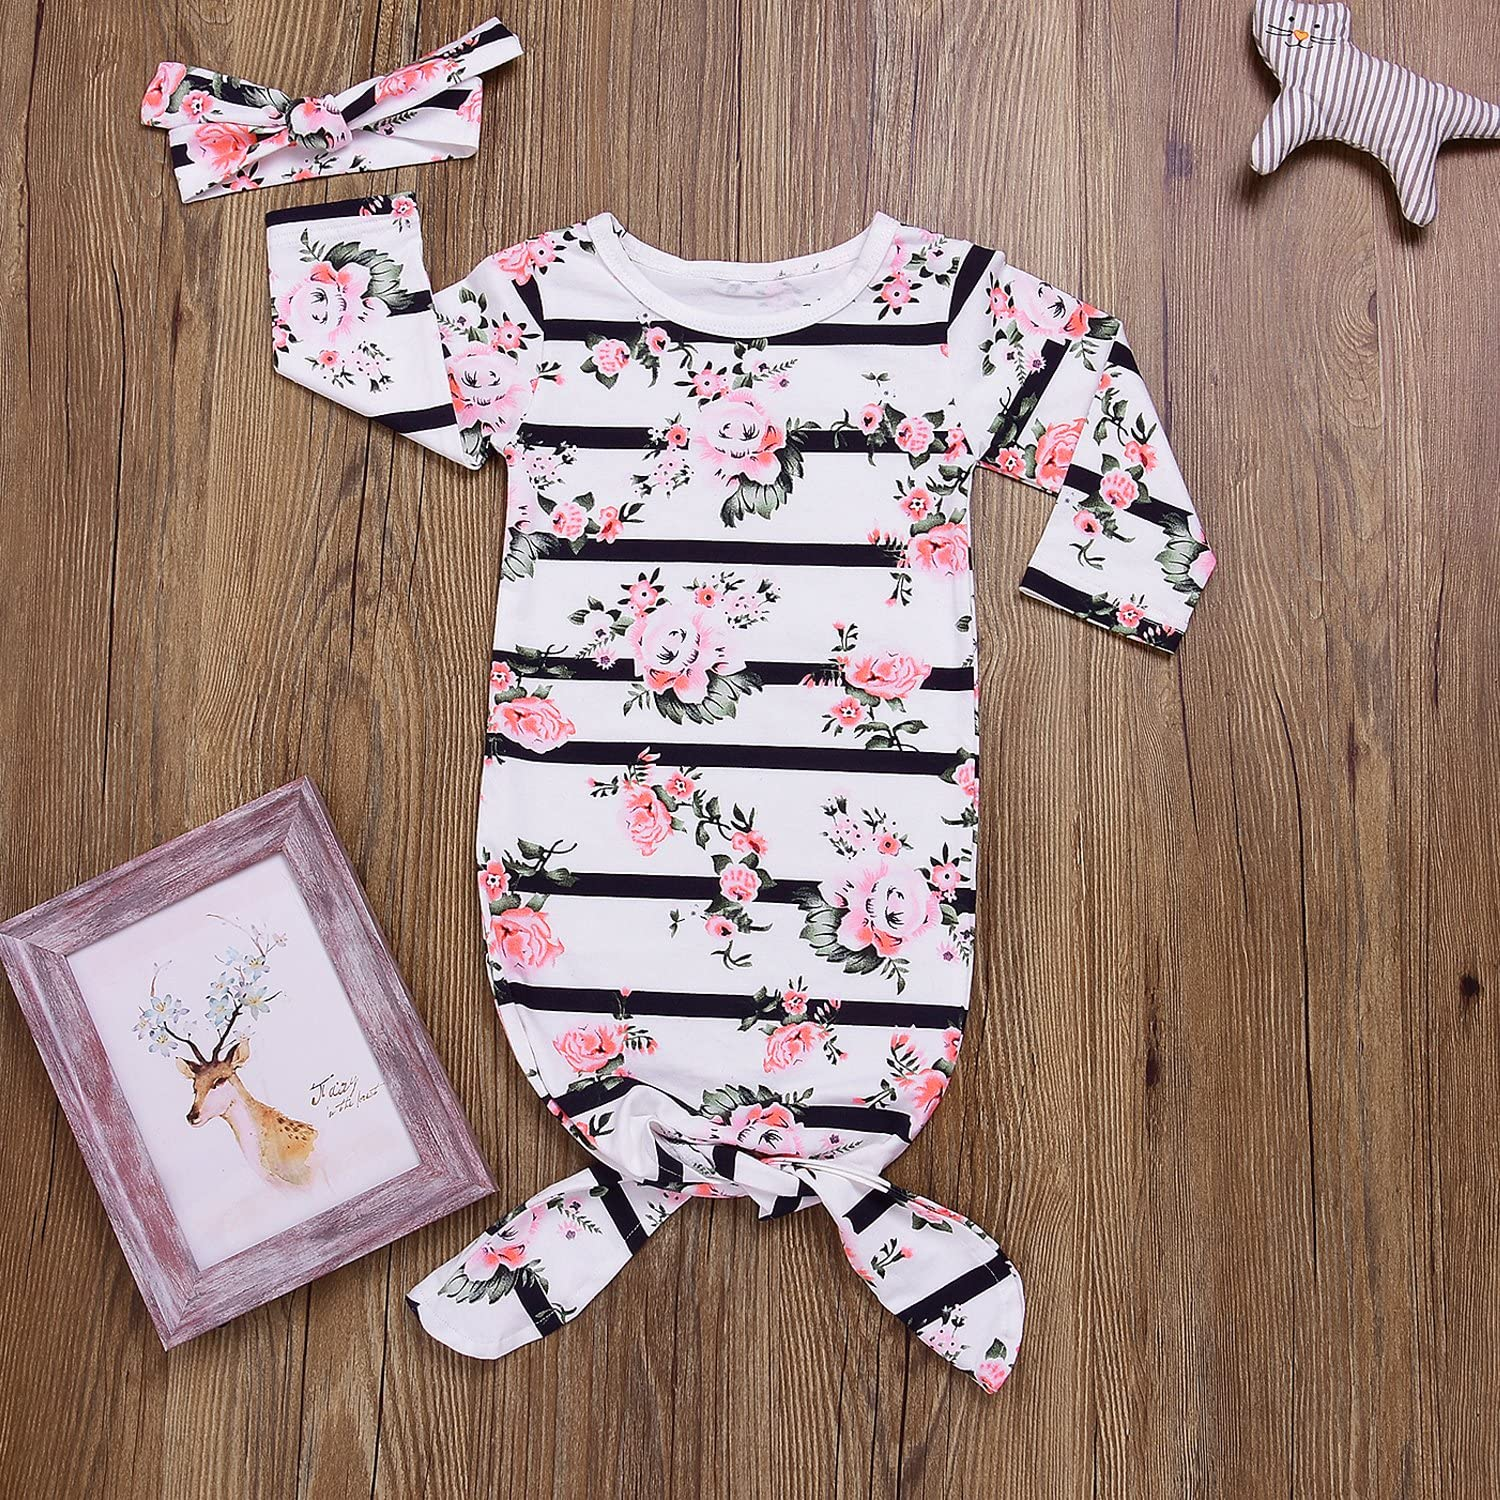 Mini honey Newborn Baby Sleepy Floral Striped Gown Headband Sleepwear Romper Sleeping Bags